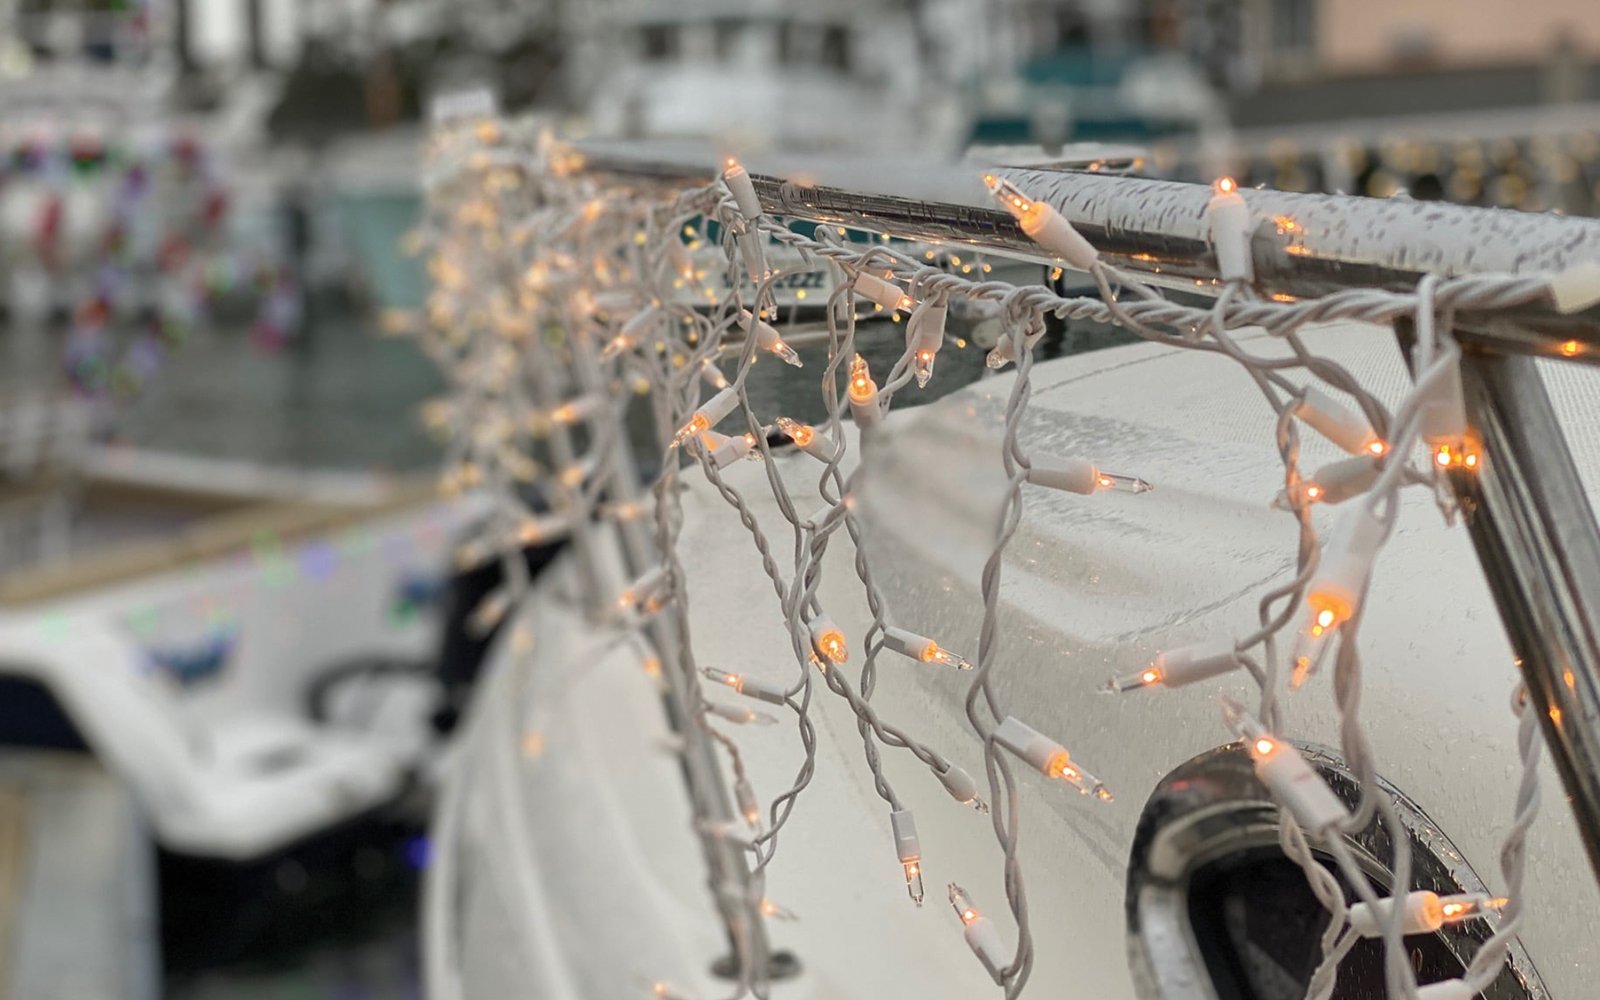 christmas lights hanging from the deck of a boat